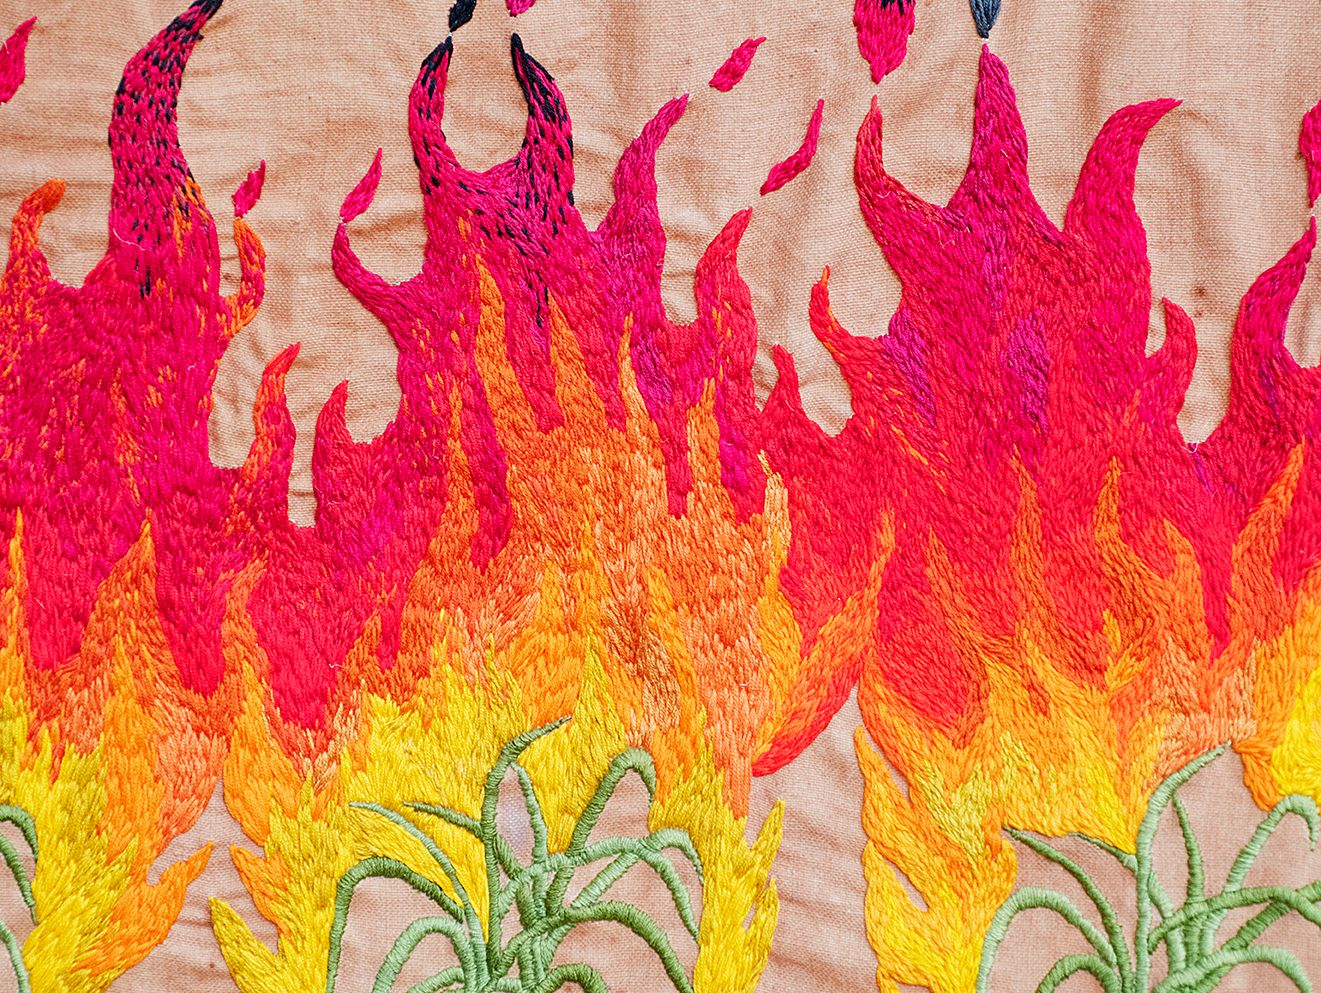 Quishile Charan, Burning Ganna Khet (Burning Sugarcane Farm), 2021, 153cm by 152cm, close up of embroidery detail. Technique: hand dyed textile, embroidery thread, cotton, hessian sacks. Textile is naturally dyed with avocado seeds. Image taken by: Raymond Sagapolutele.